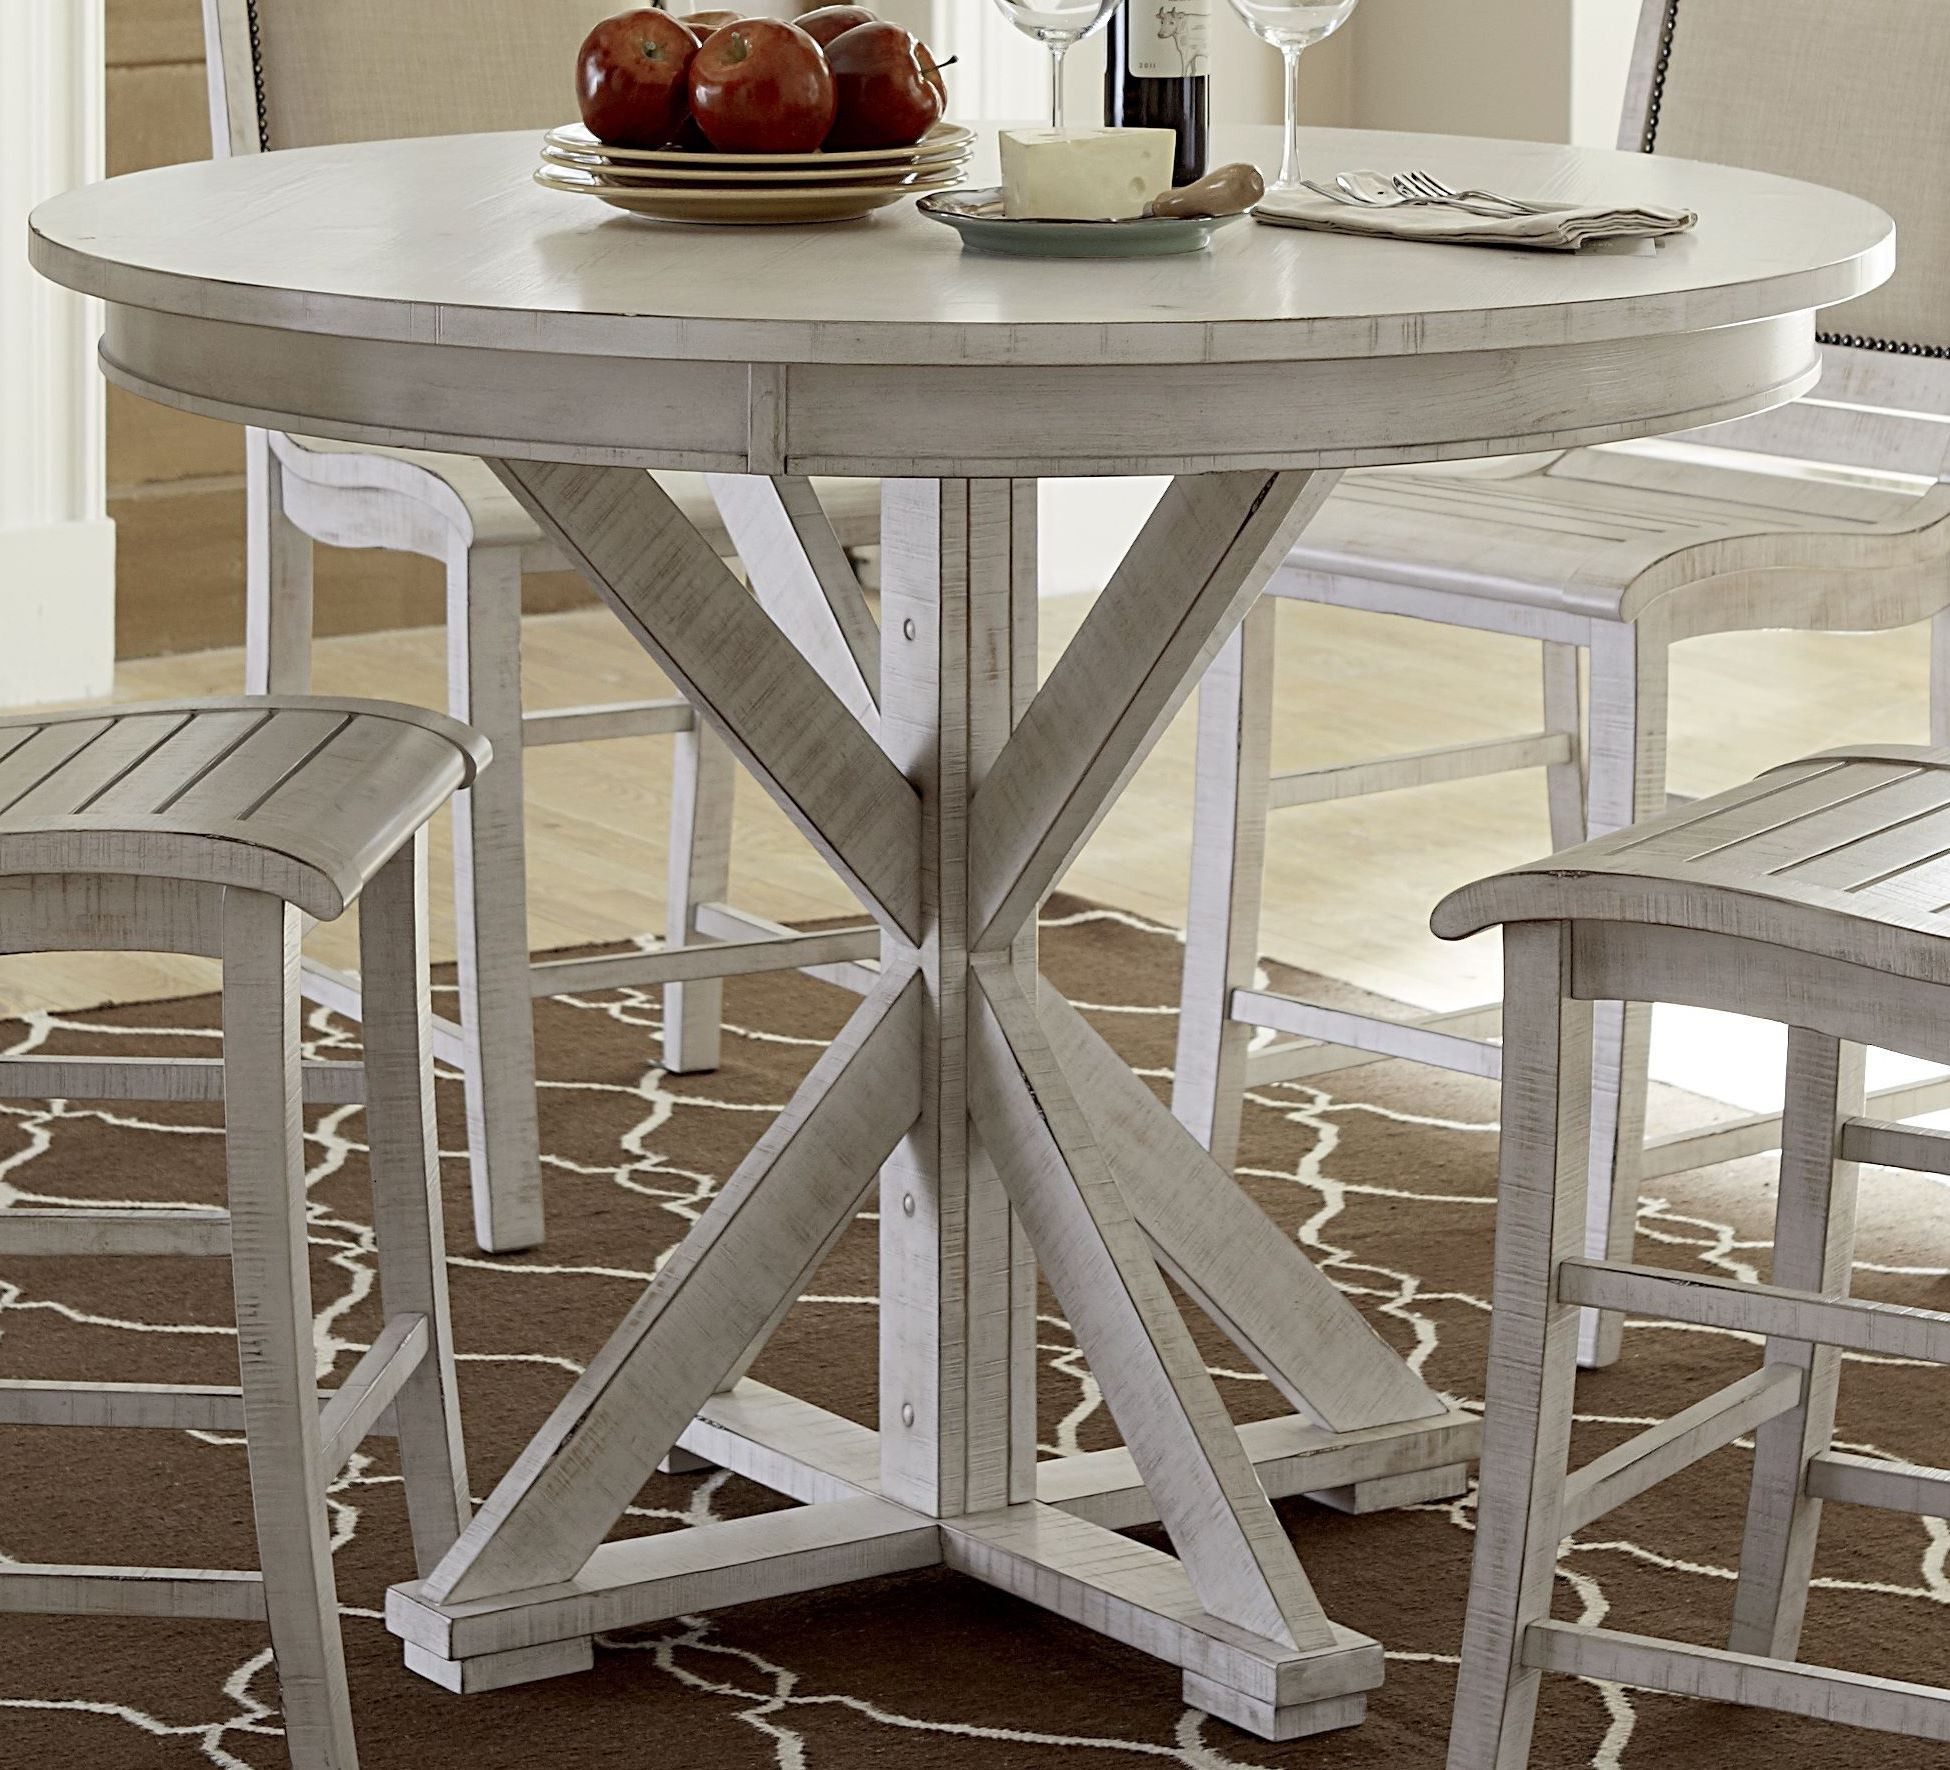 Willow Distressed White Round Counter Height Dining Table P820 15B